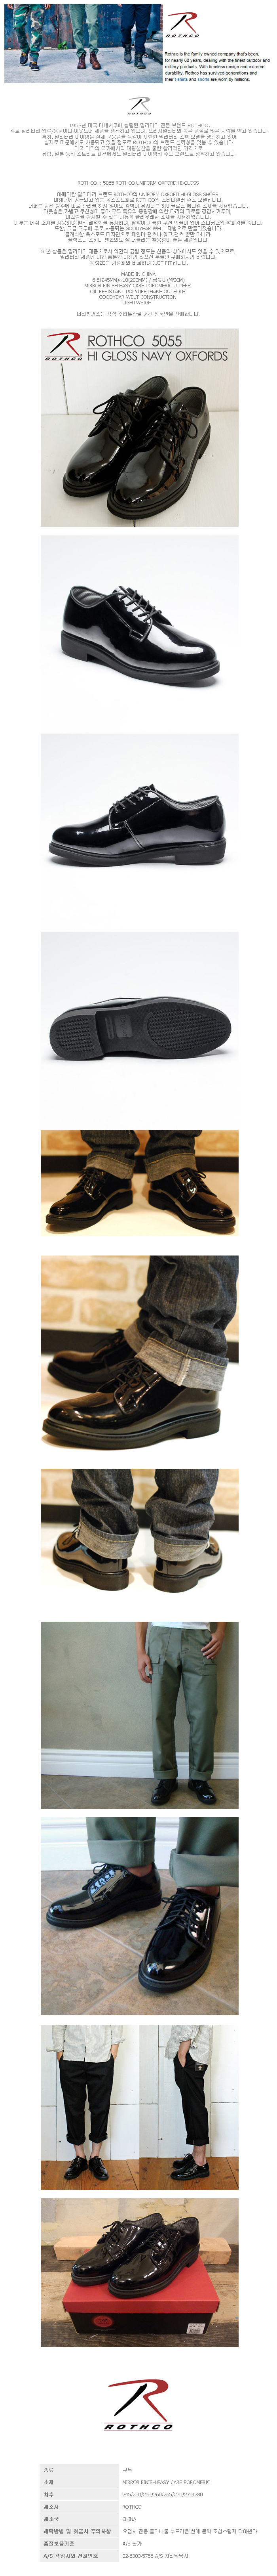 UNIFORM OXFORD HI-GLOSS